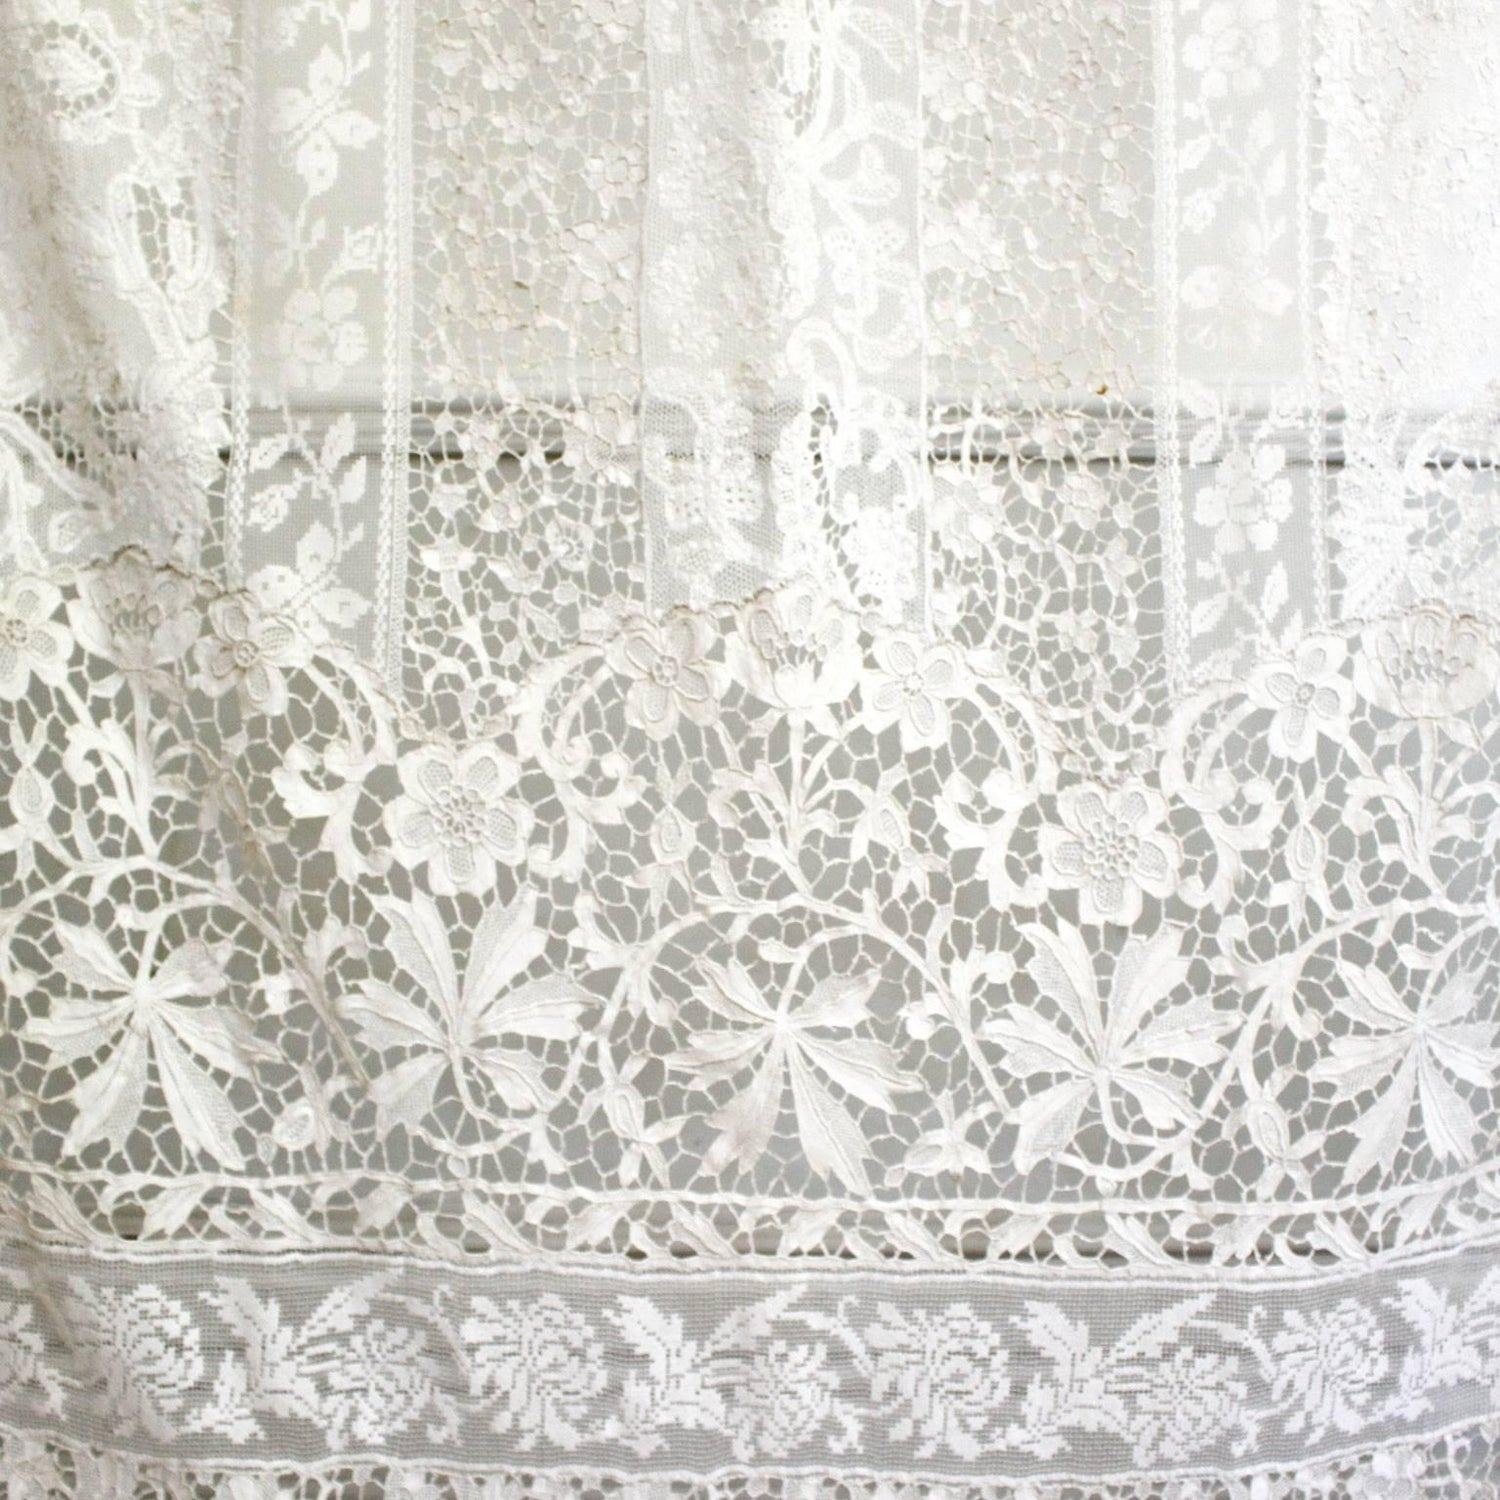 org net for living curtainslace french boatylicious curtains curtain lace window inspirations incredible curtainsfrench picture